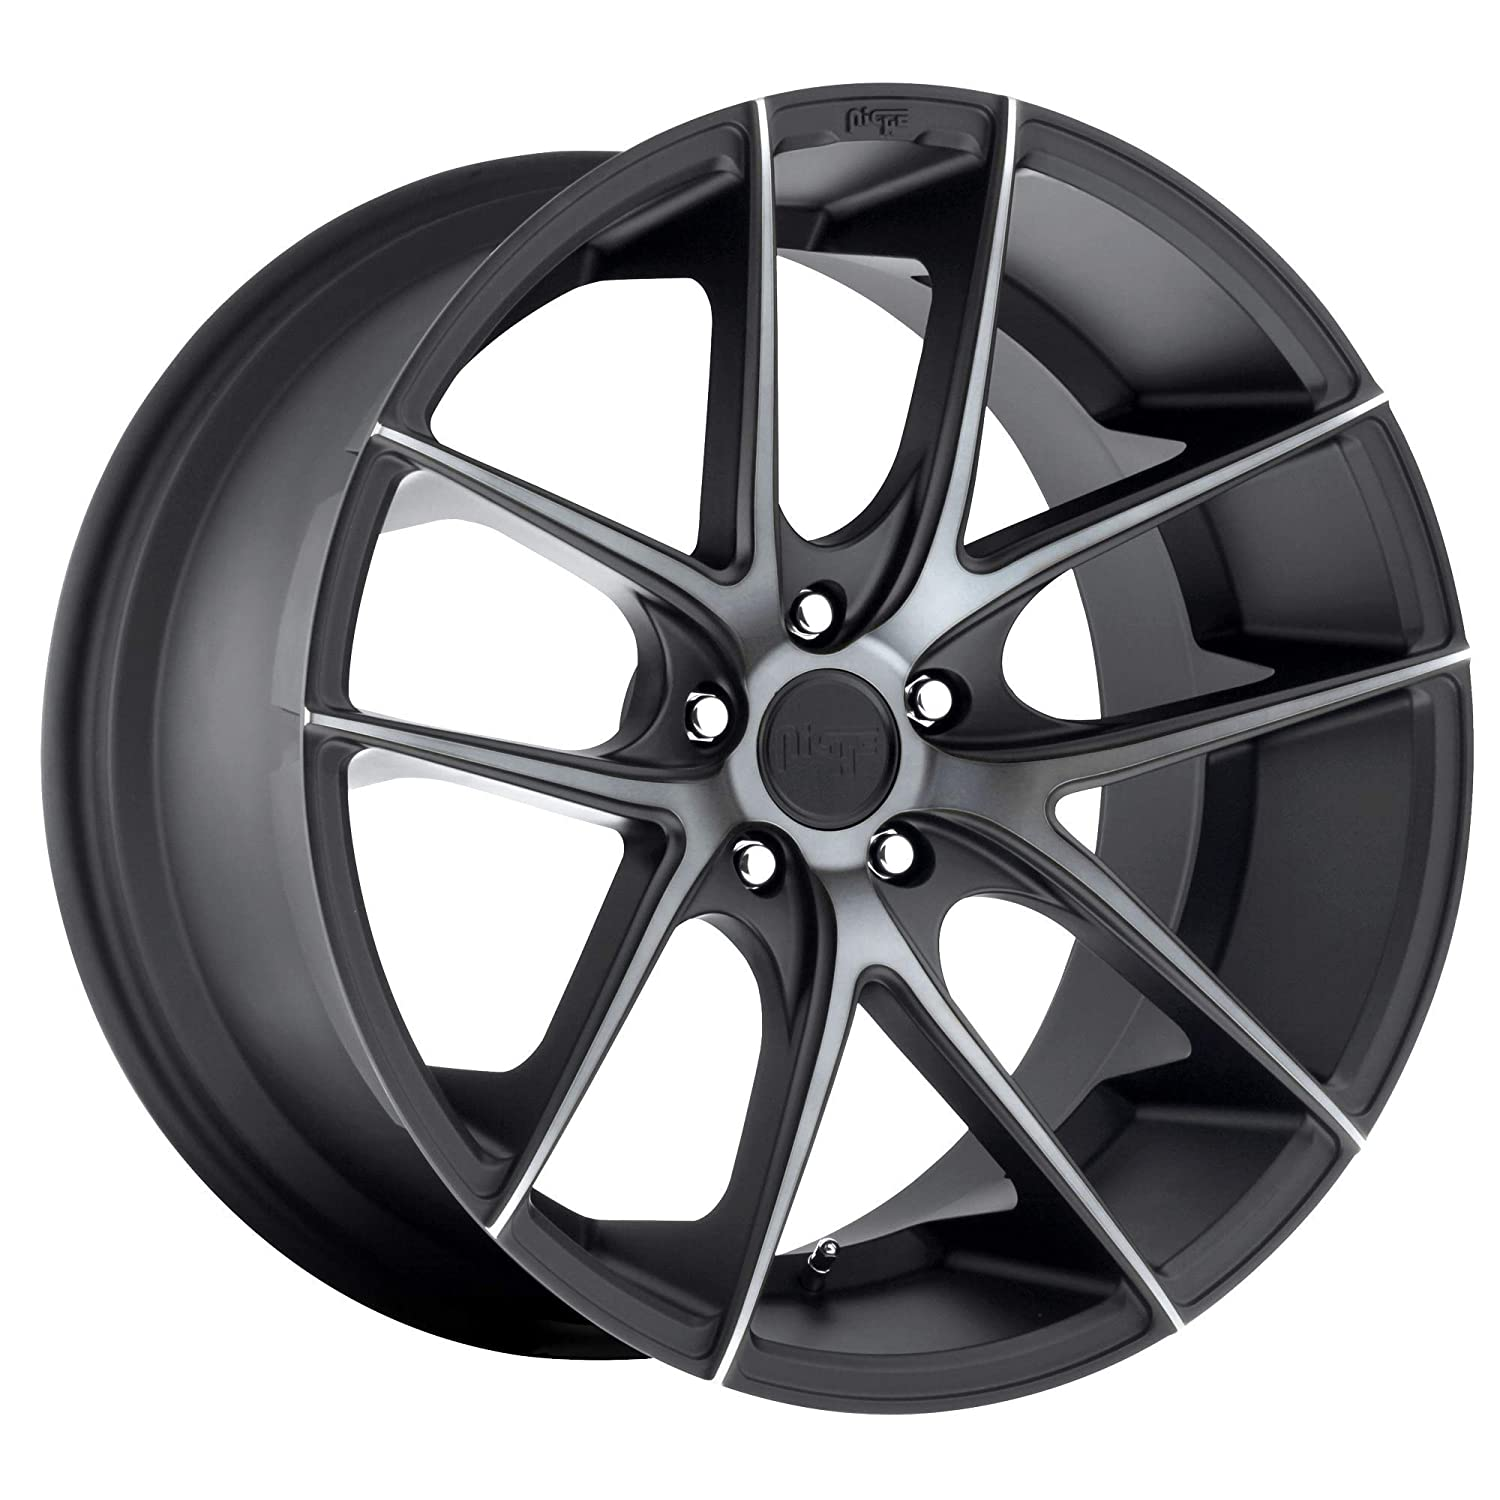 Niche 1PC Targa 20X8.5 5X120.00 Matte Black Double Dark Tint (15 MM) Wheel